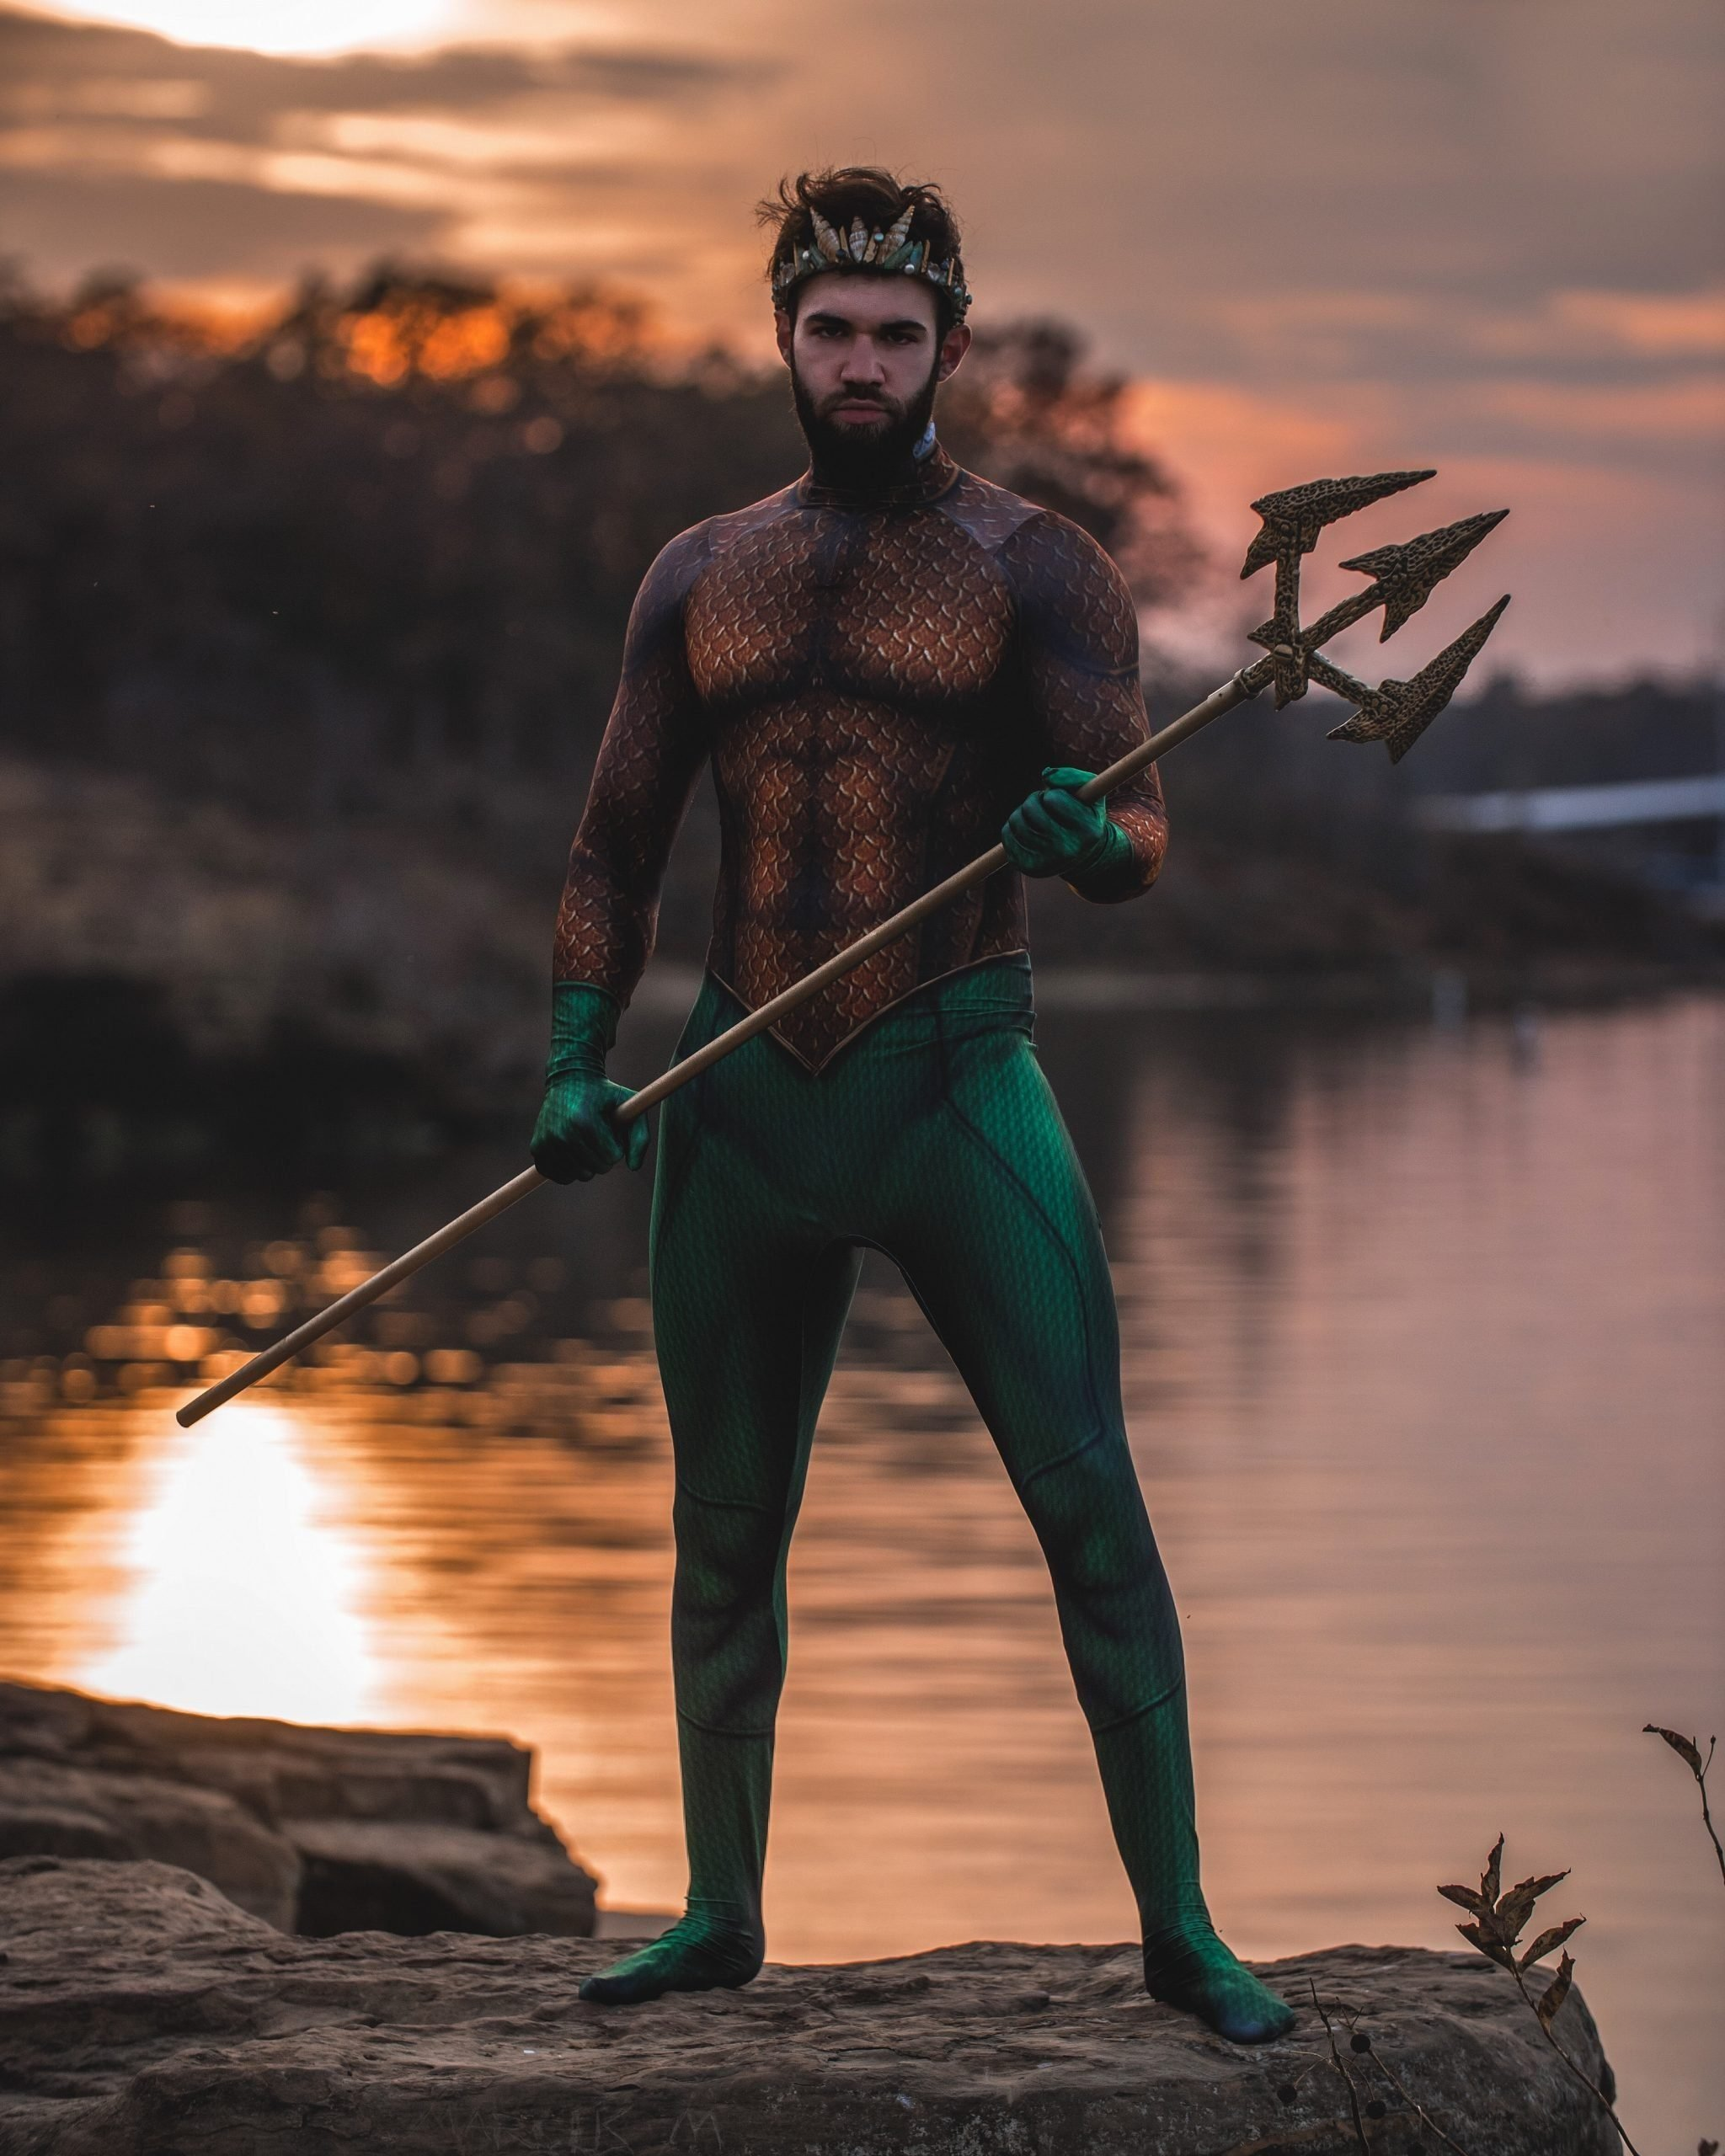 Man dressed like Aquaman